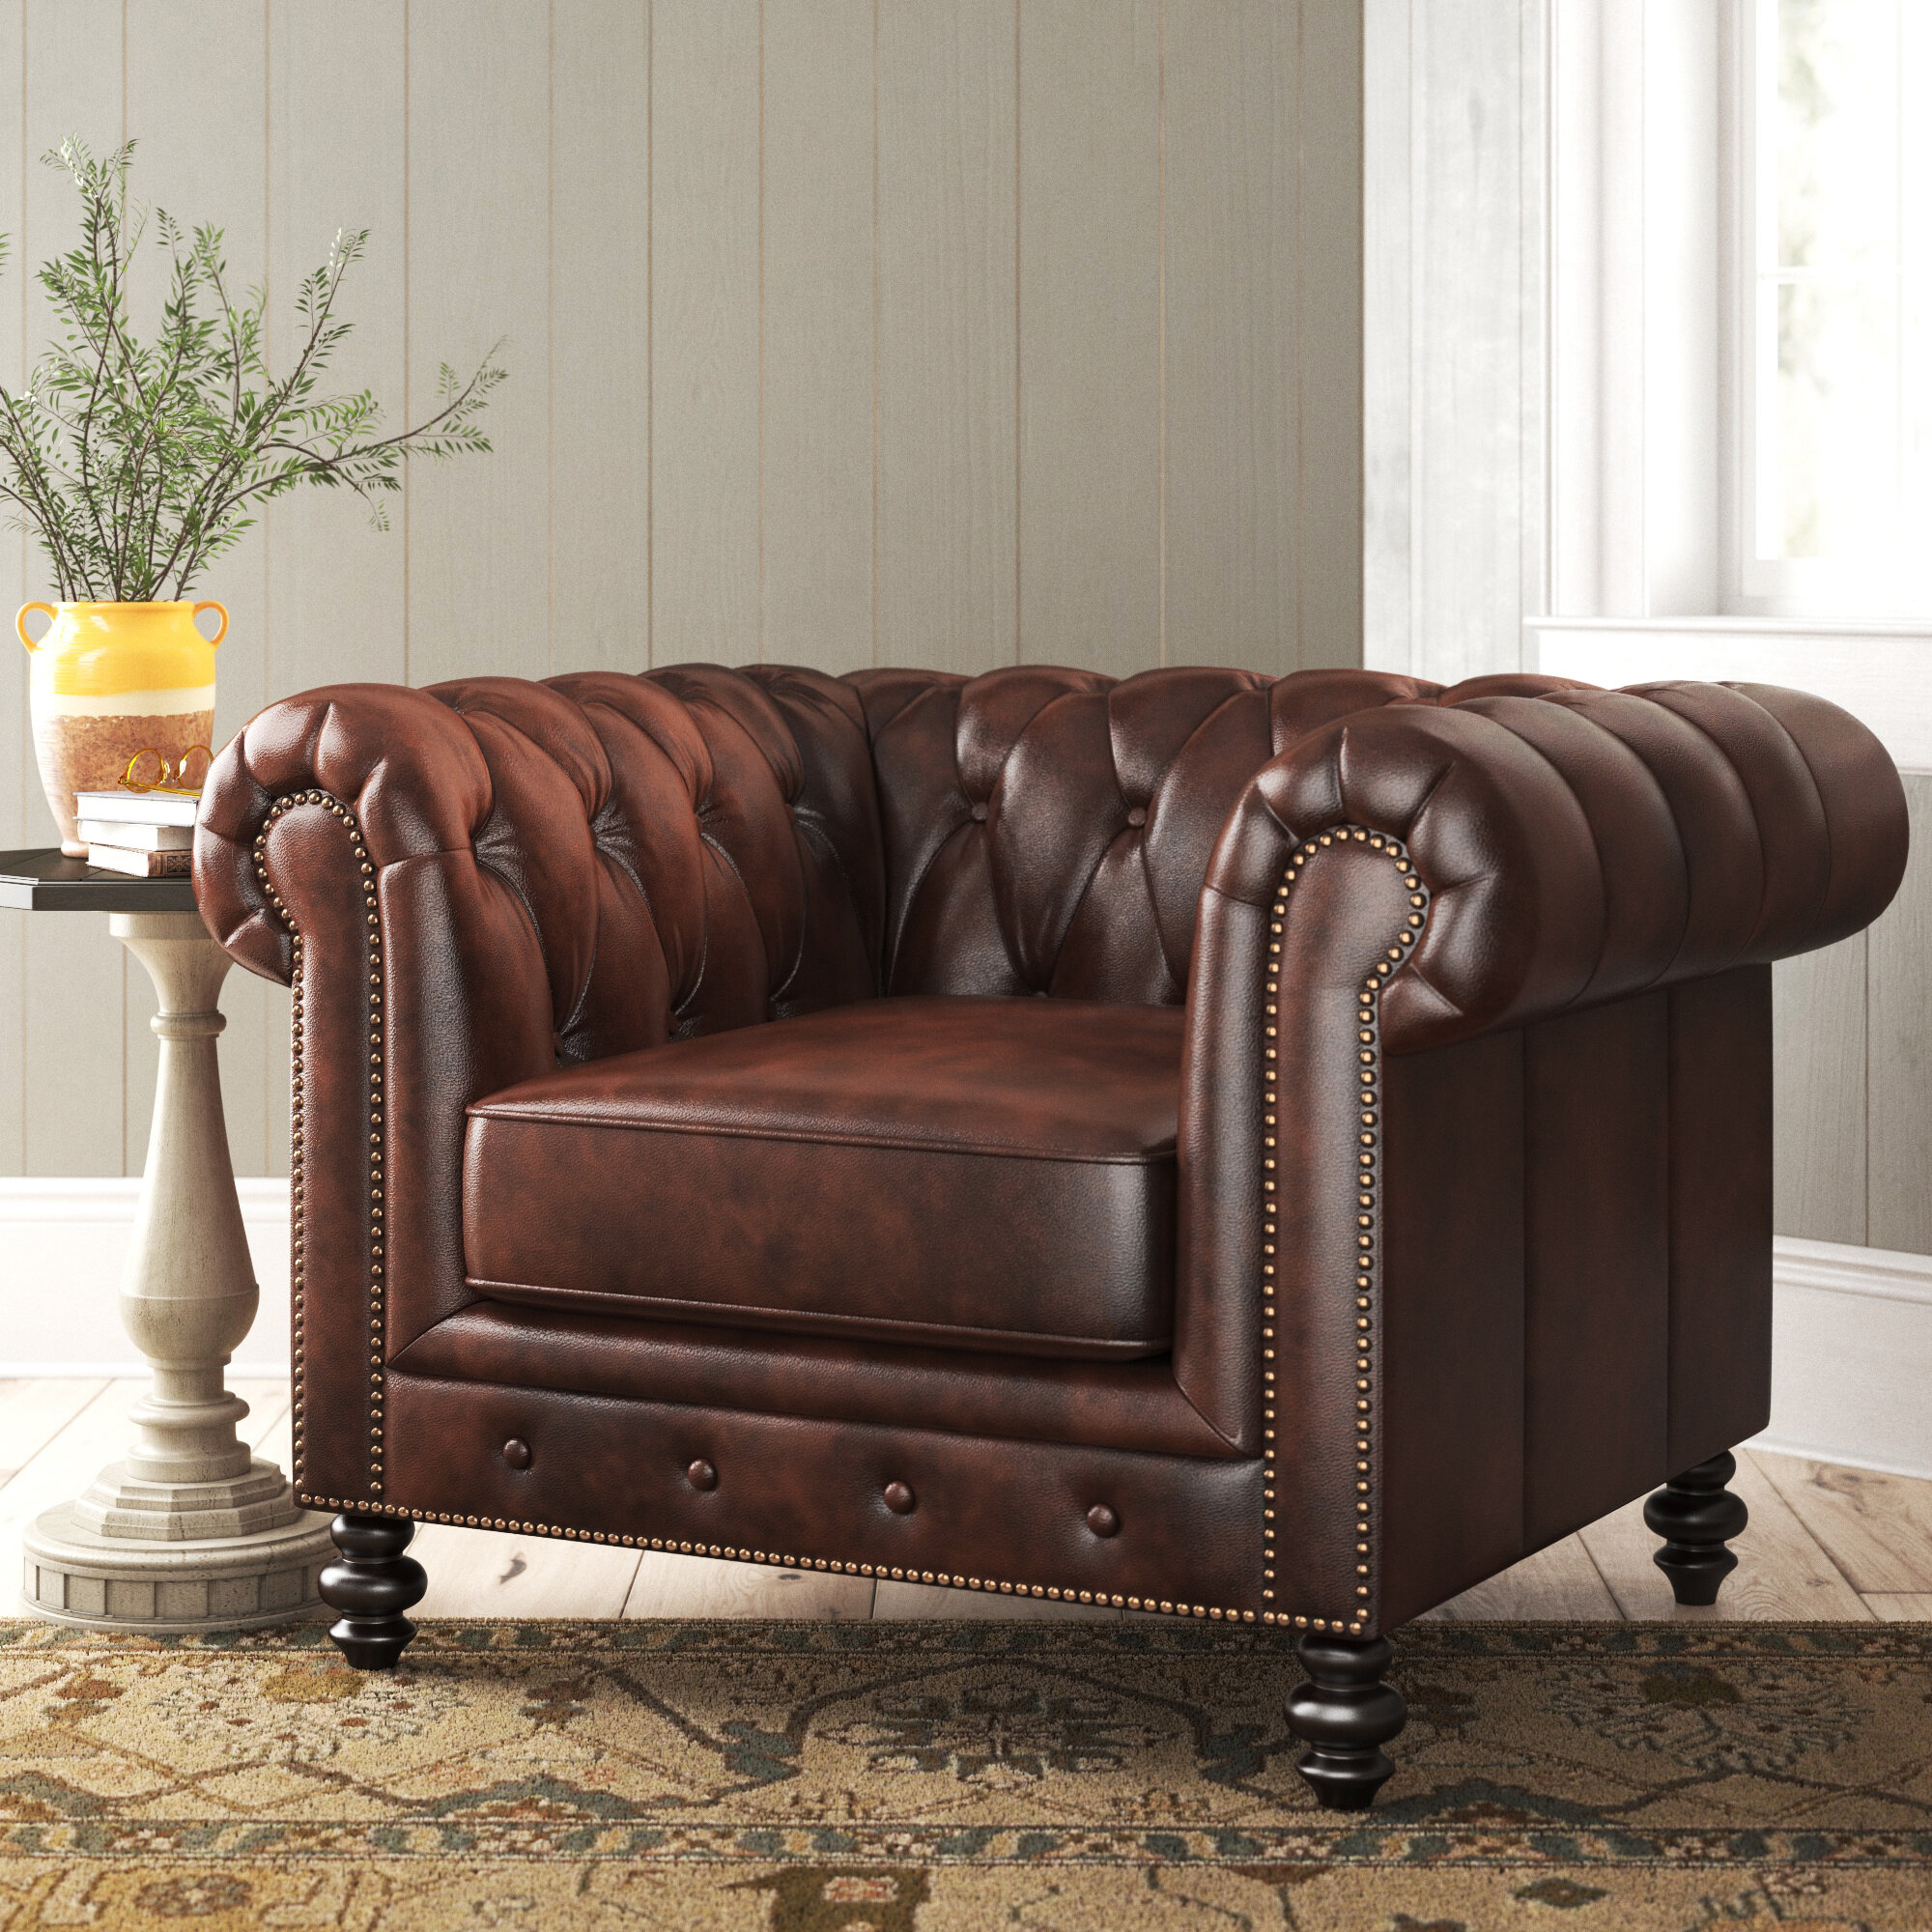 Chesterfield Espresso Wood Accent Chairs You'Ll Love In 2021 Throughout Kjellfrid Chesterfield Chairs (View 3 of 15)